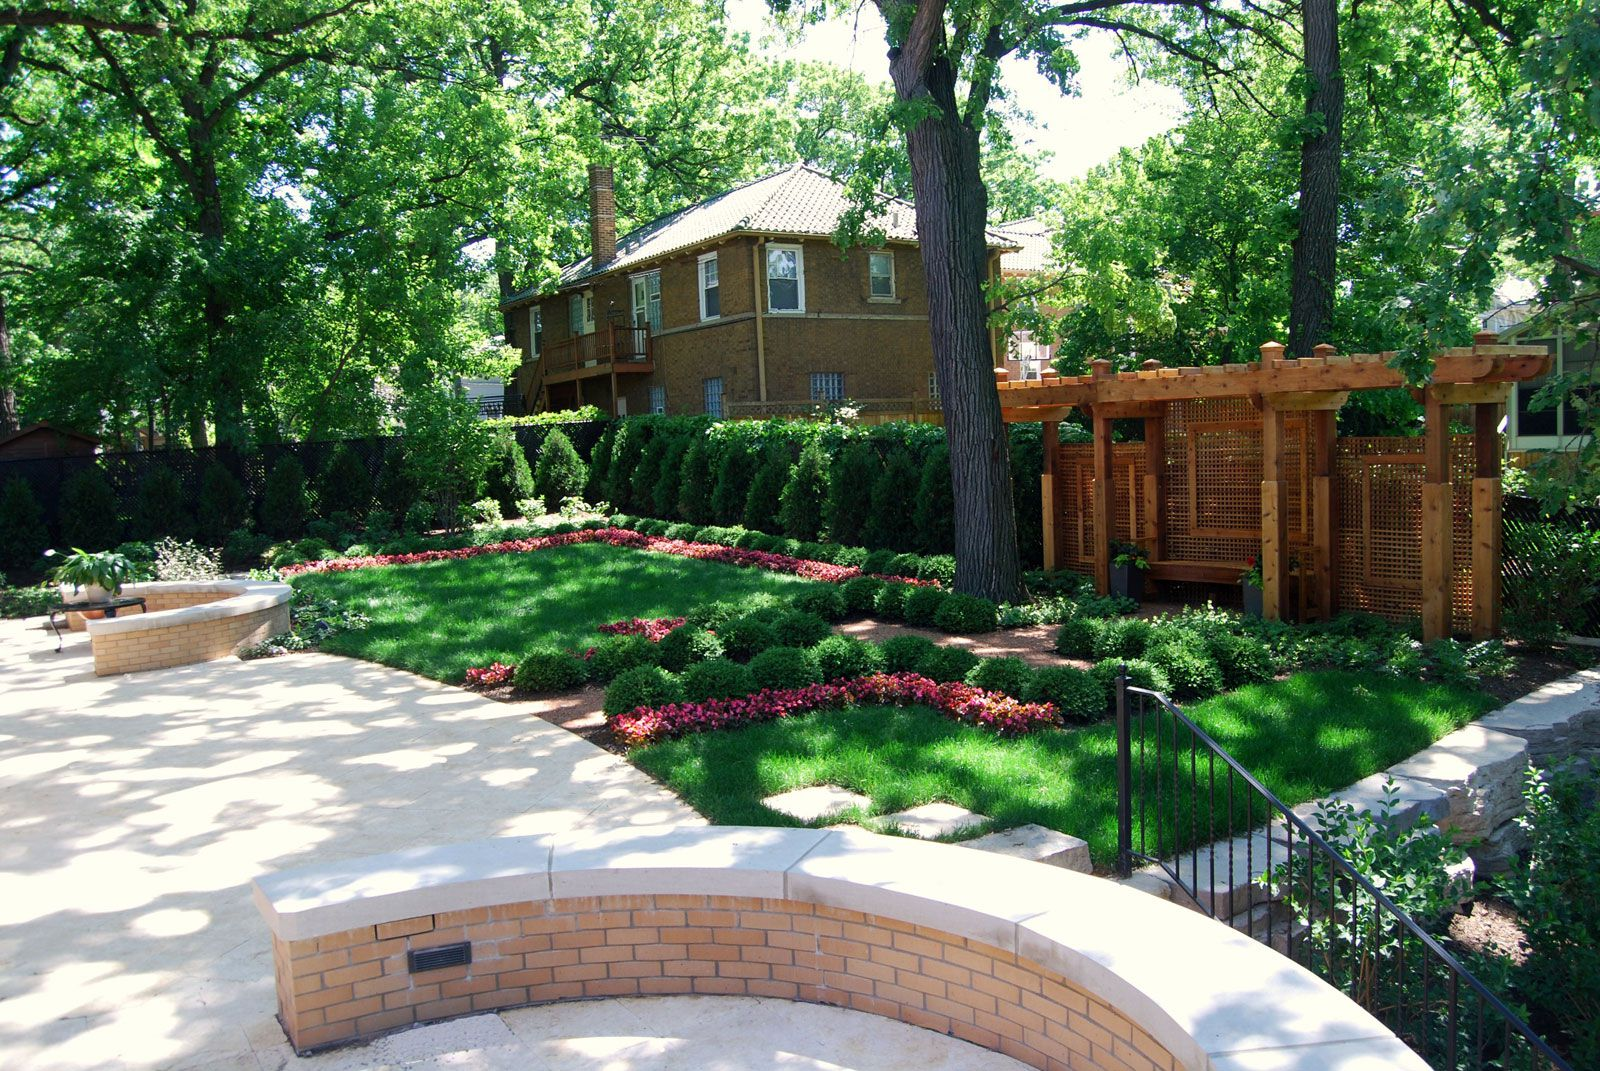 Garden Landscape Design Design For Home